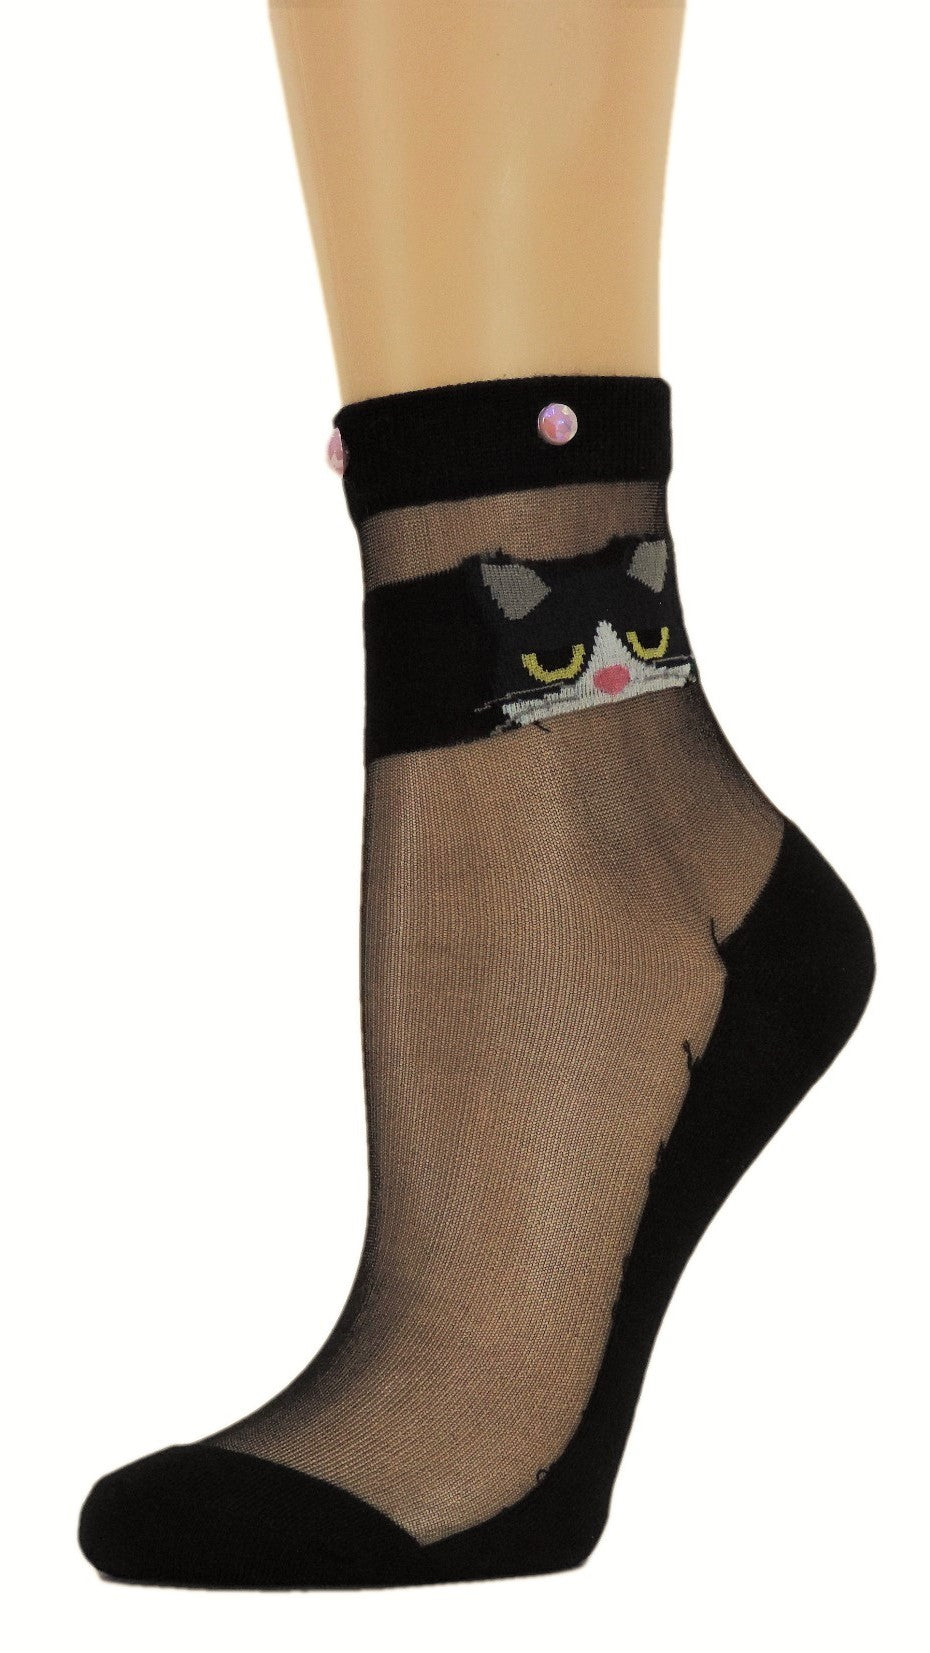 Kitty Eye Black Custom Sheer Socks with beads